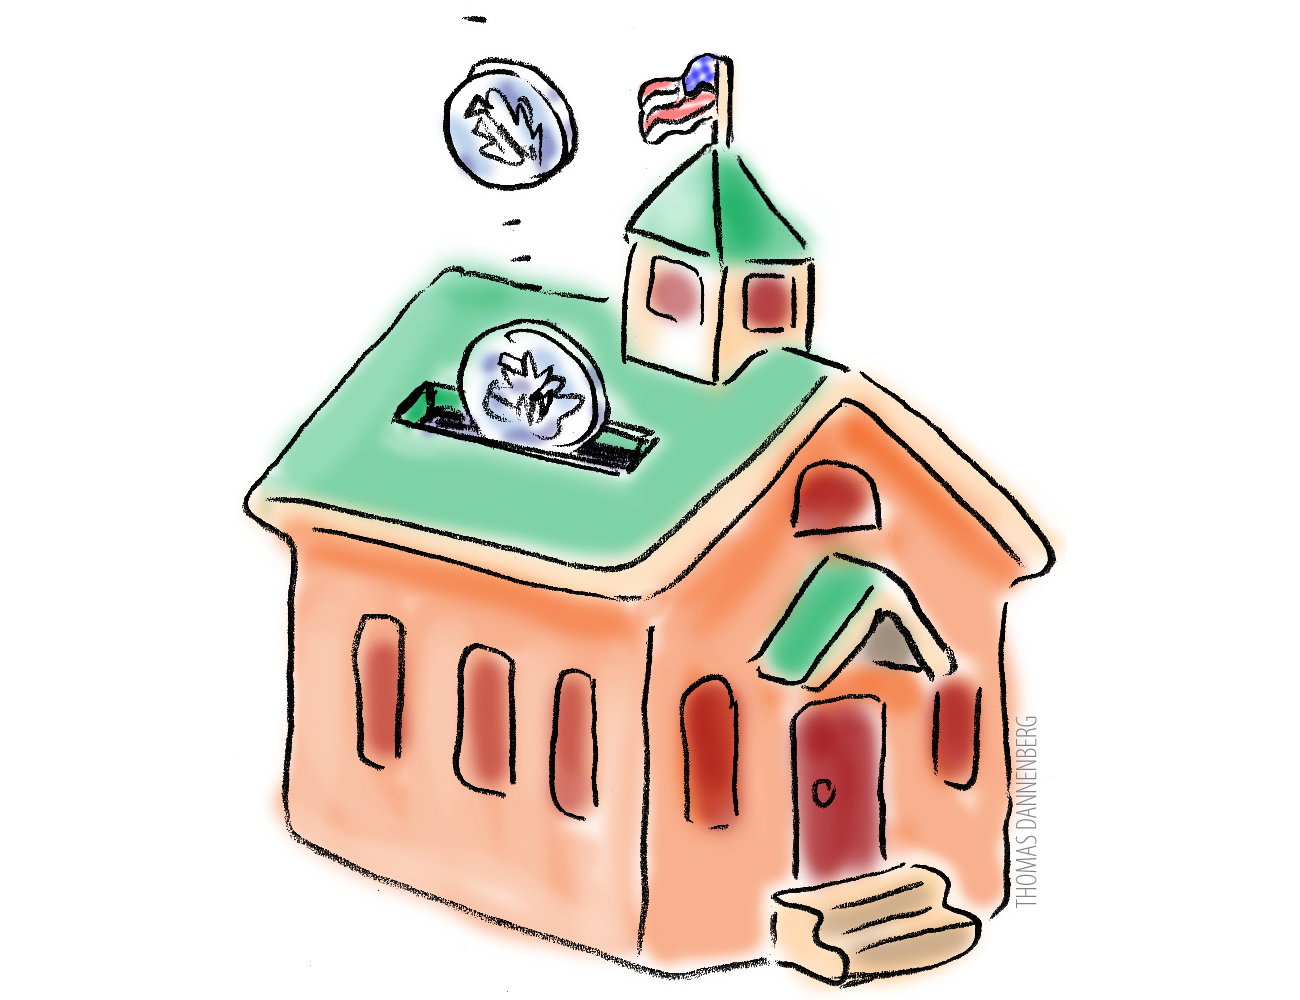 Illustration of coins falling into a school-shaped piggy bank